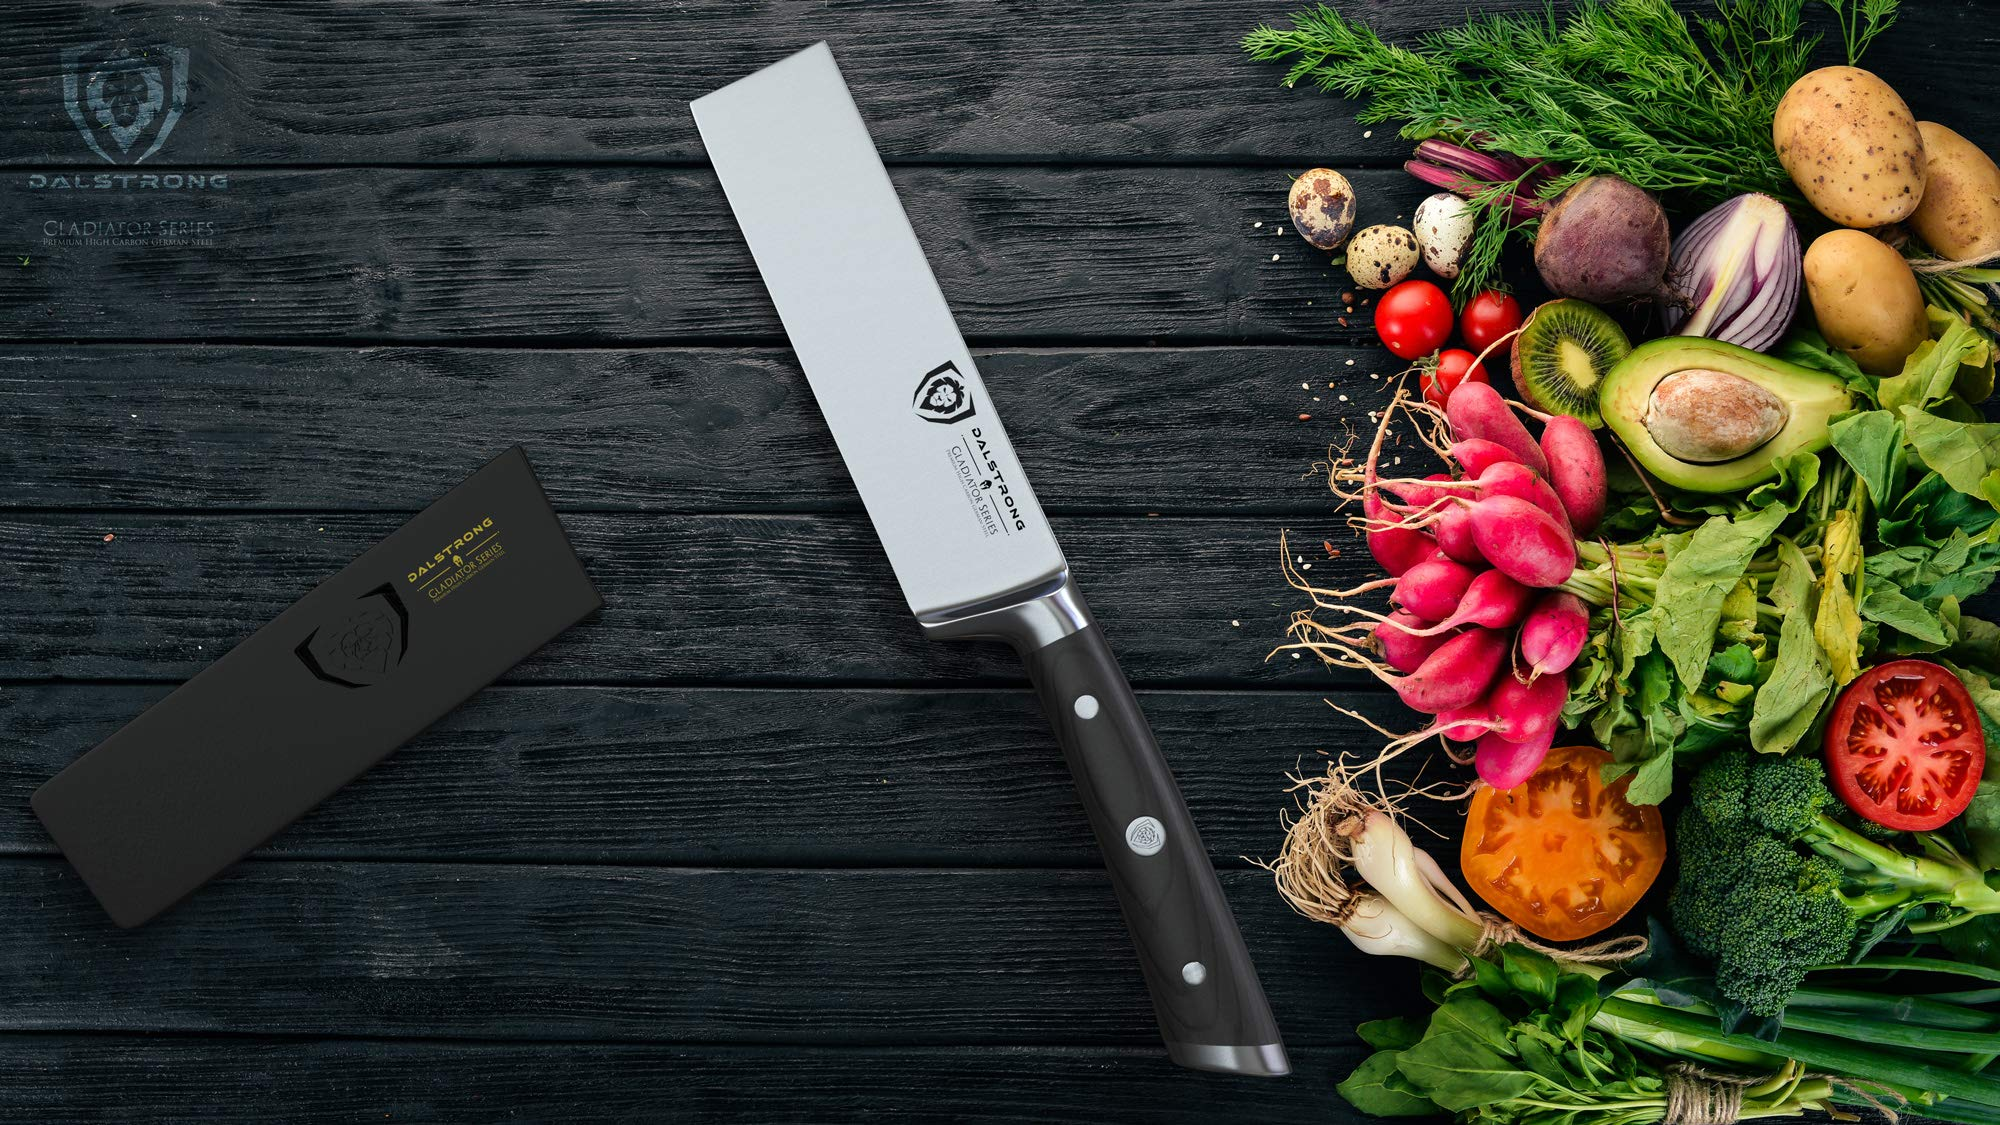 DALSTRONG Produce Knife - Gladiator Series - German HC Steel - 6'' -w/Sheath by Dalstrong (Image #3)